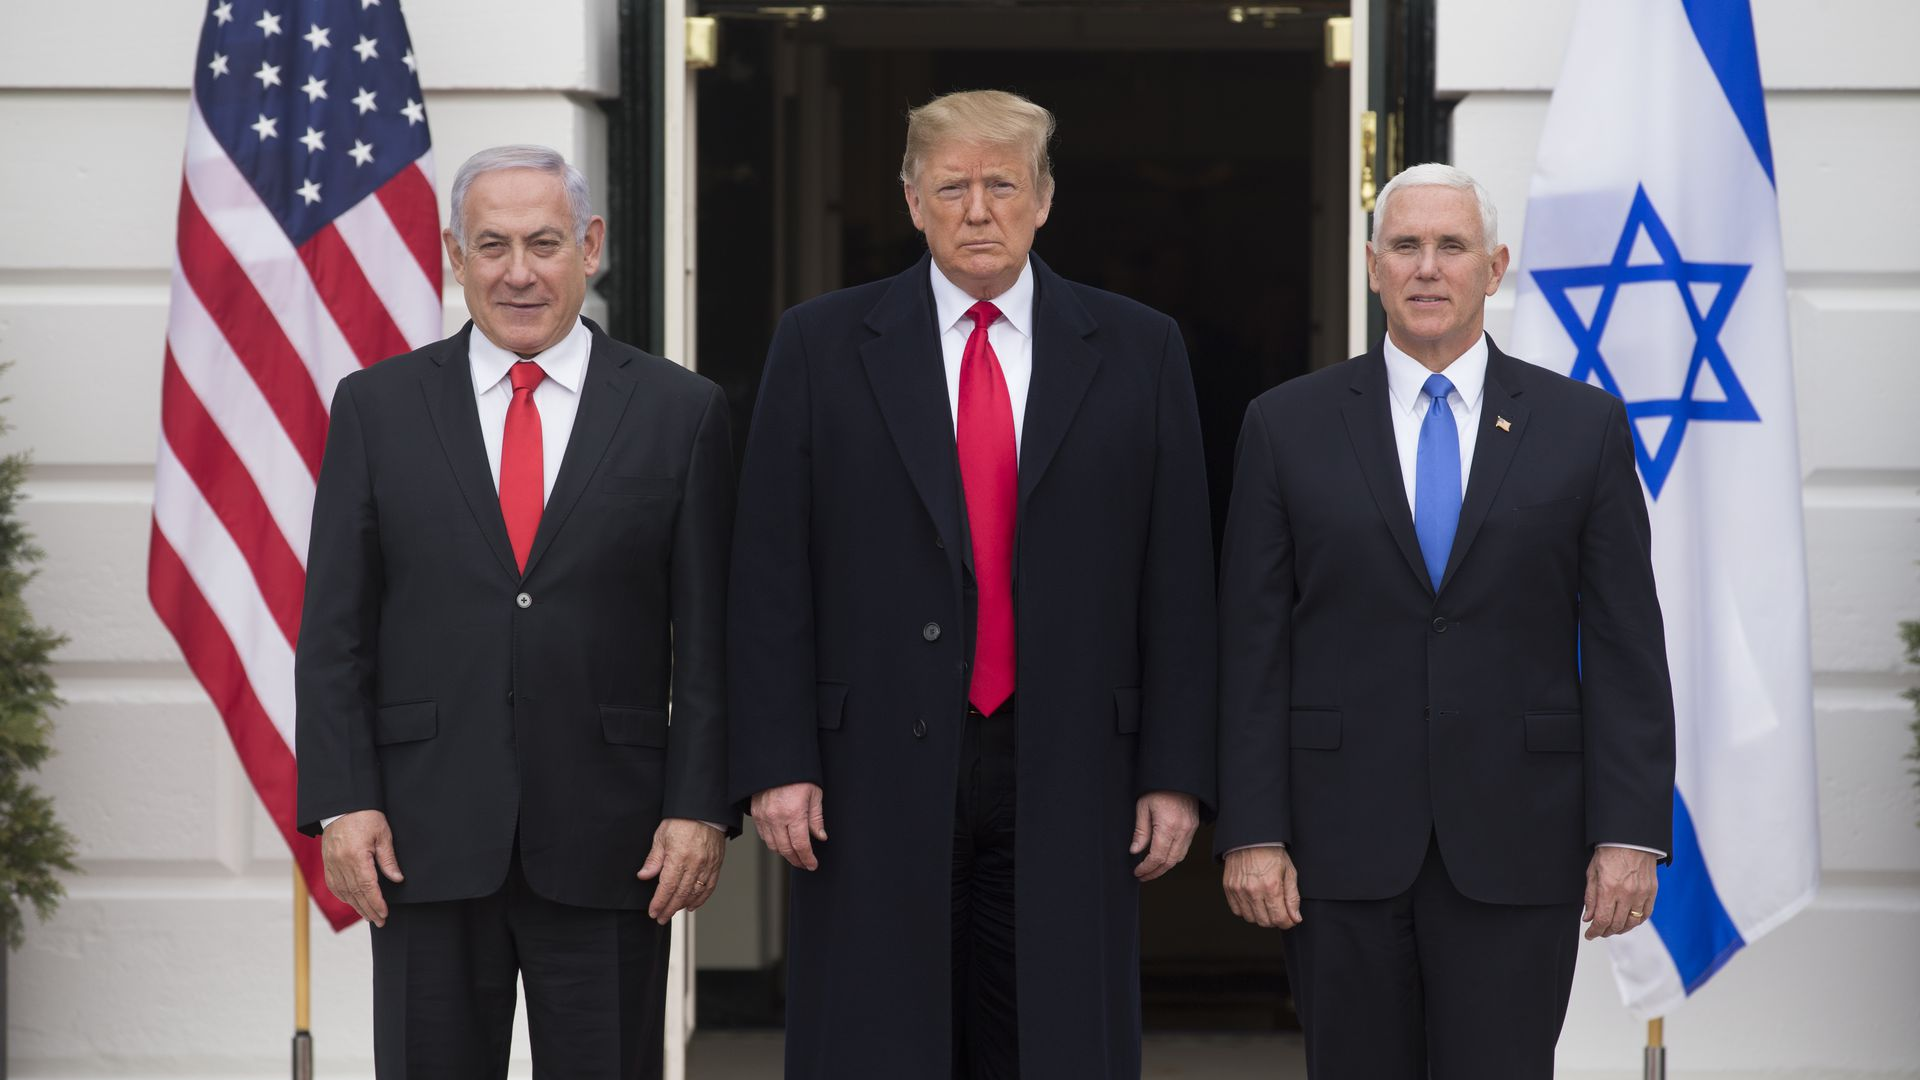 Scoop: U.S. pushing Arab states on non-belligerence pacts with Israel